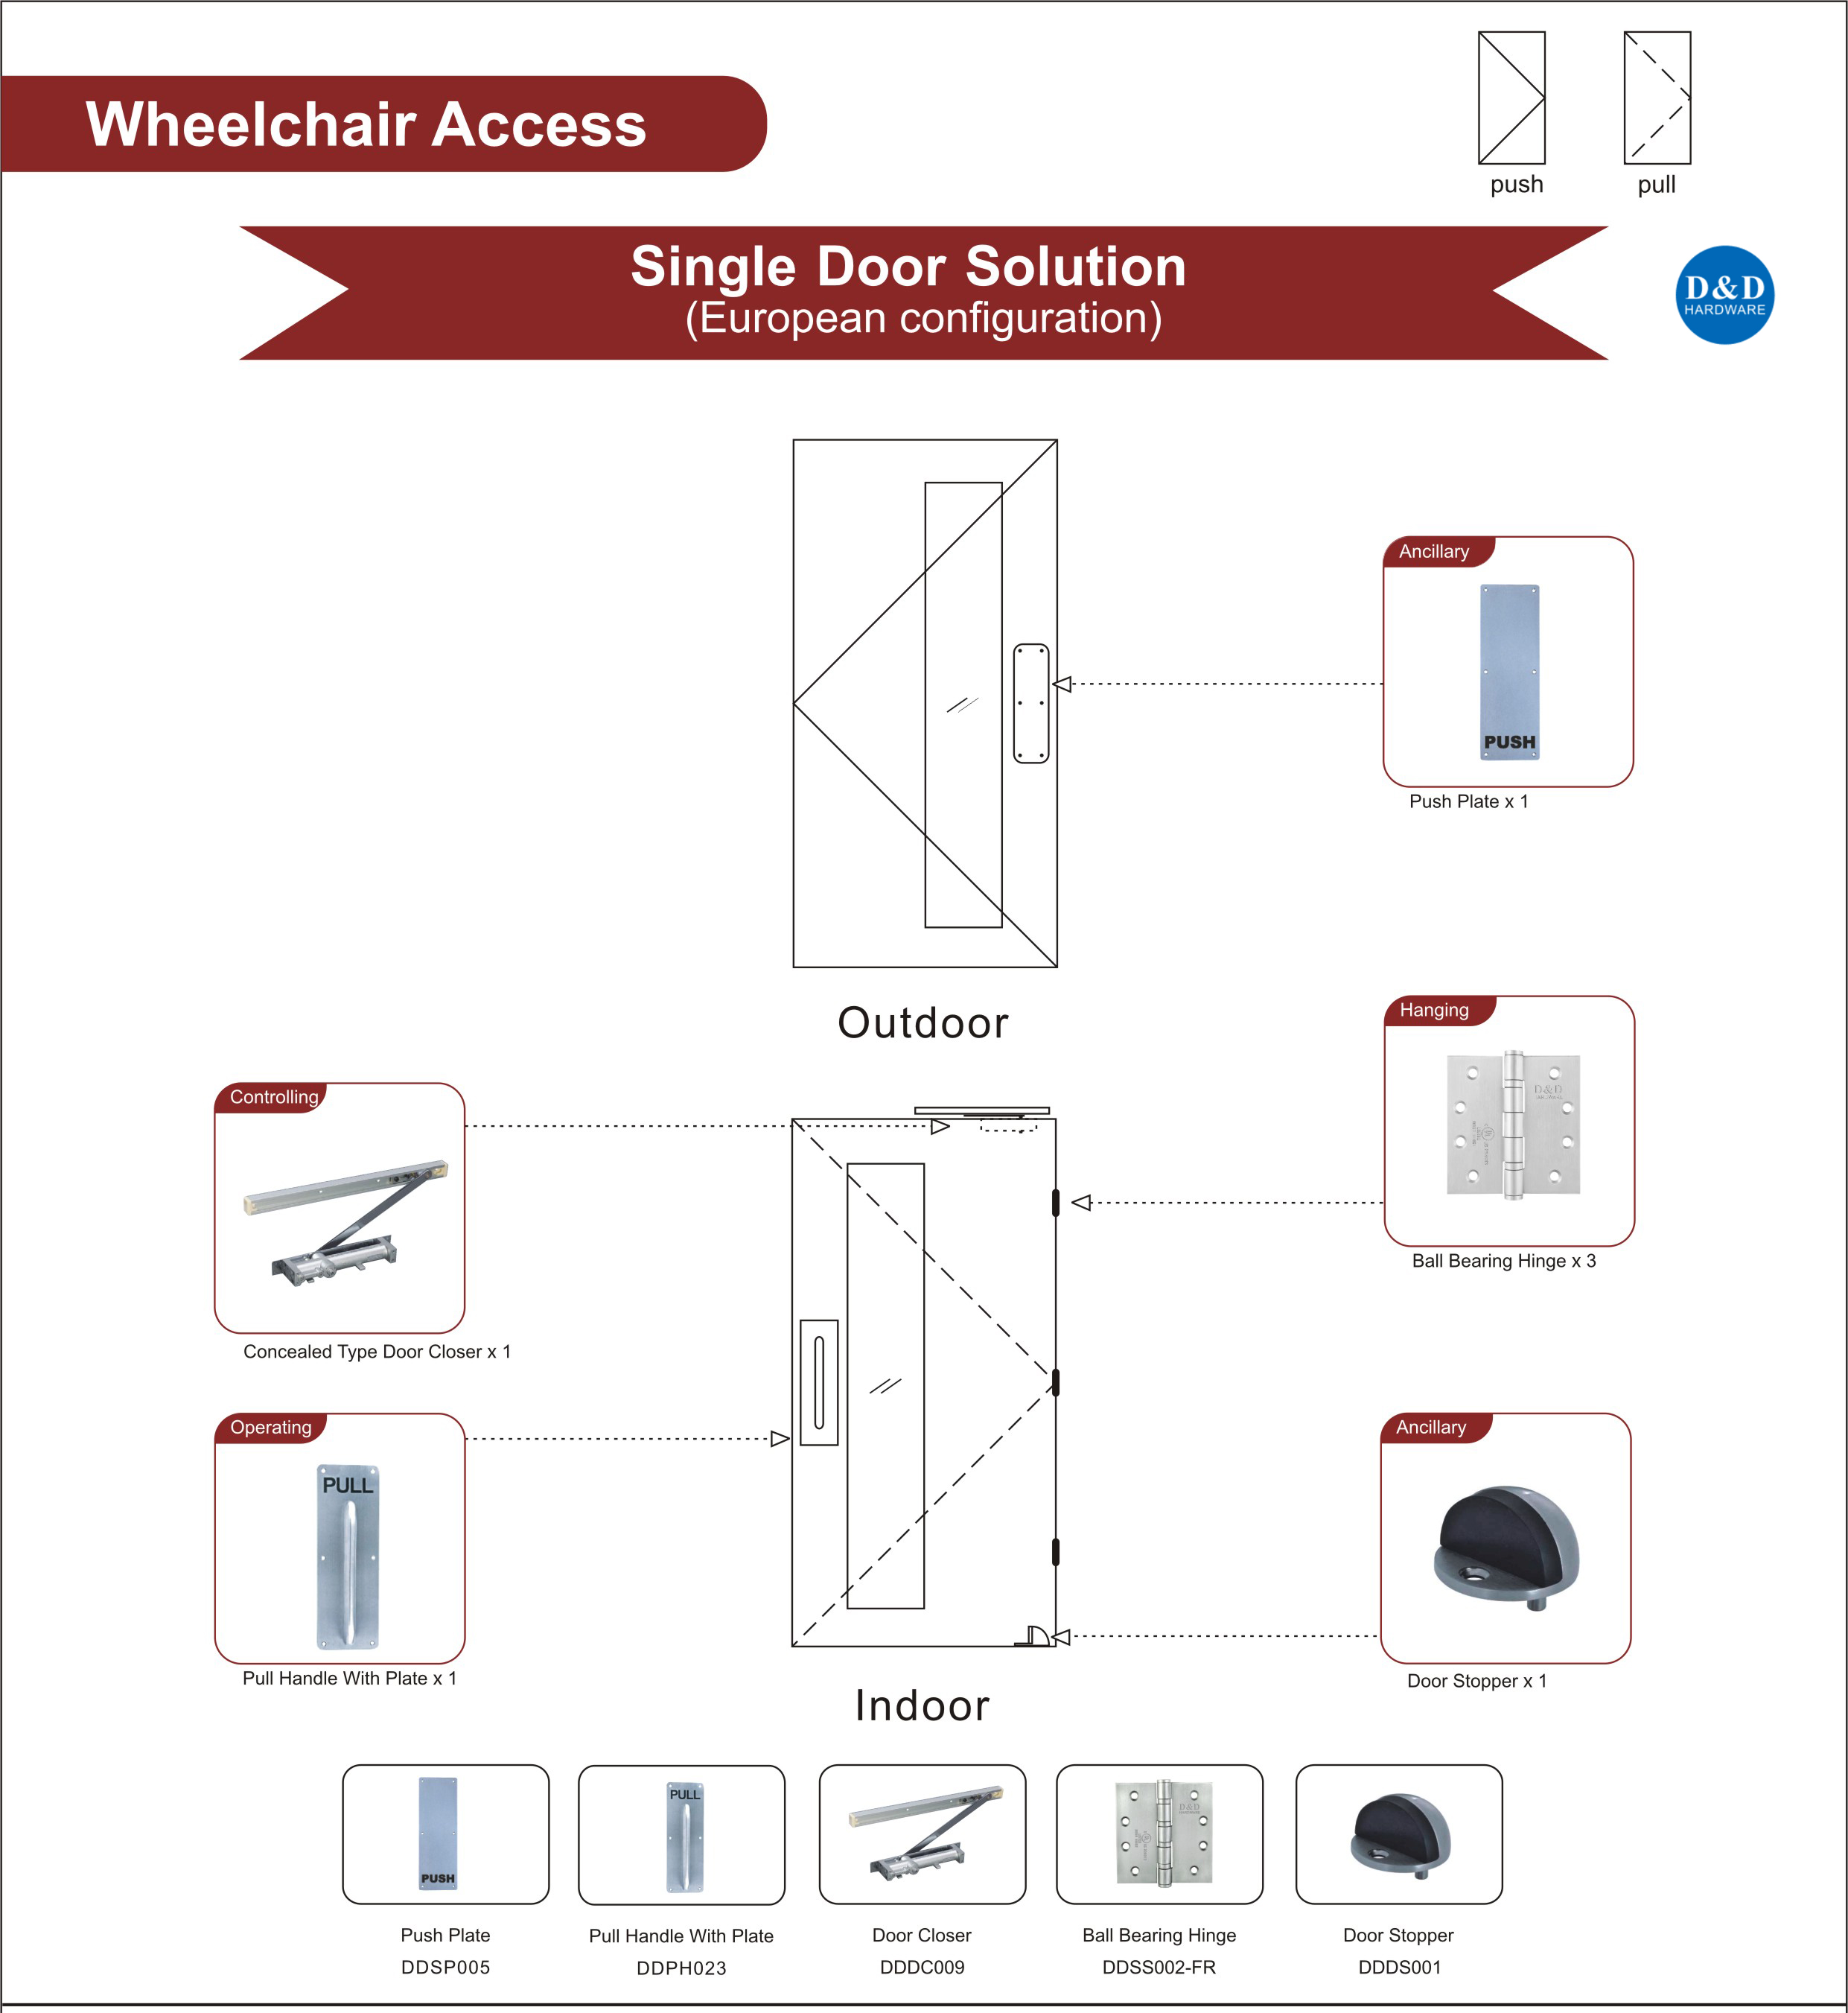 Fire Rated Wooden Door Hardware for Wheelchair Access Single Door